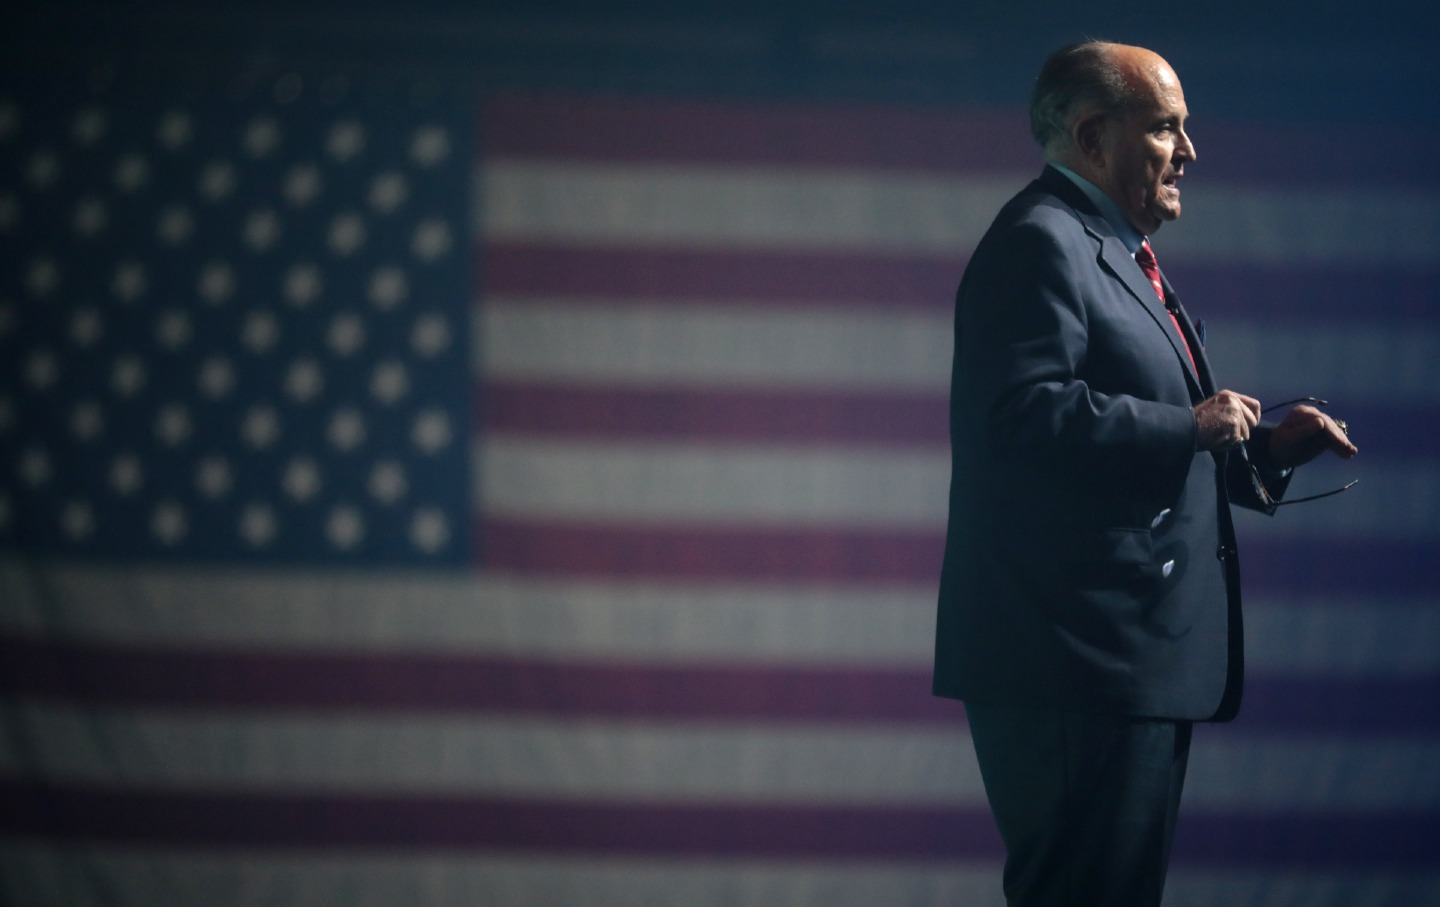 Rudy Giuliani standing and speaking in front of a US flag.